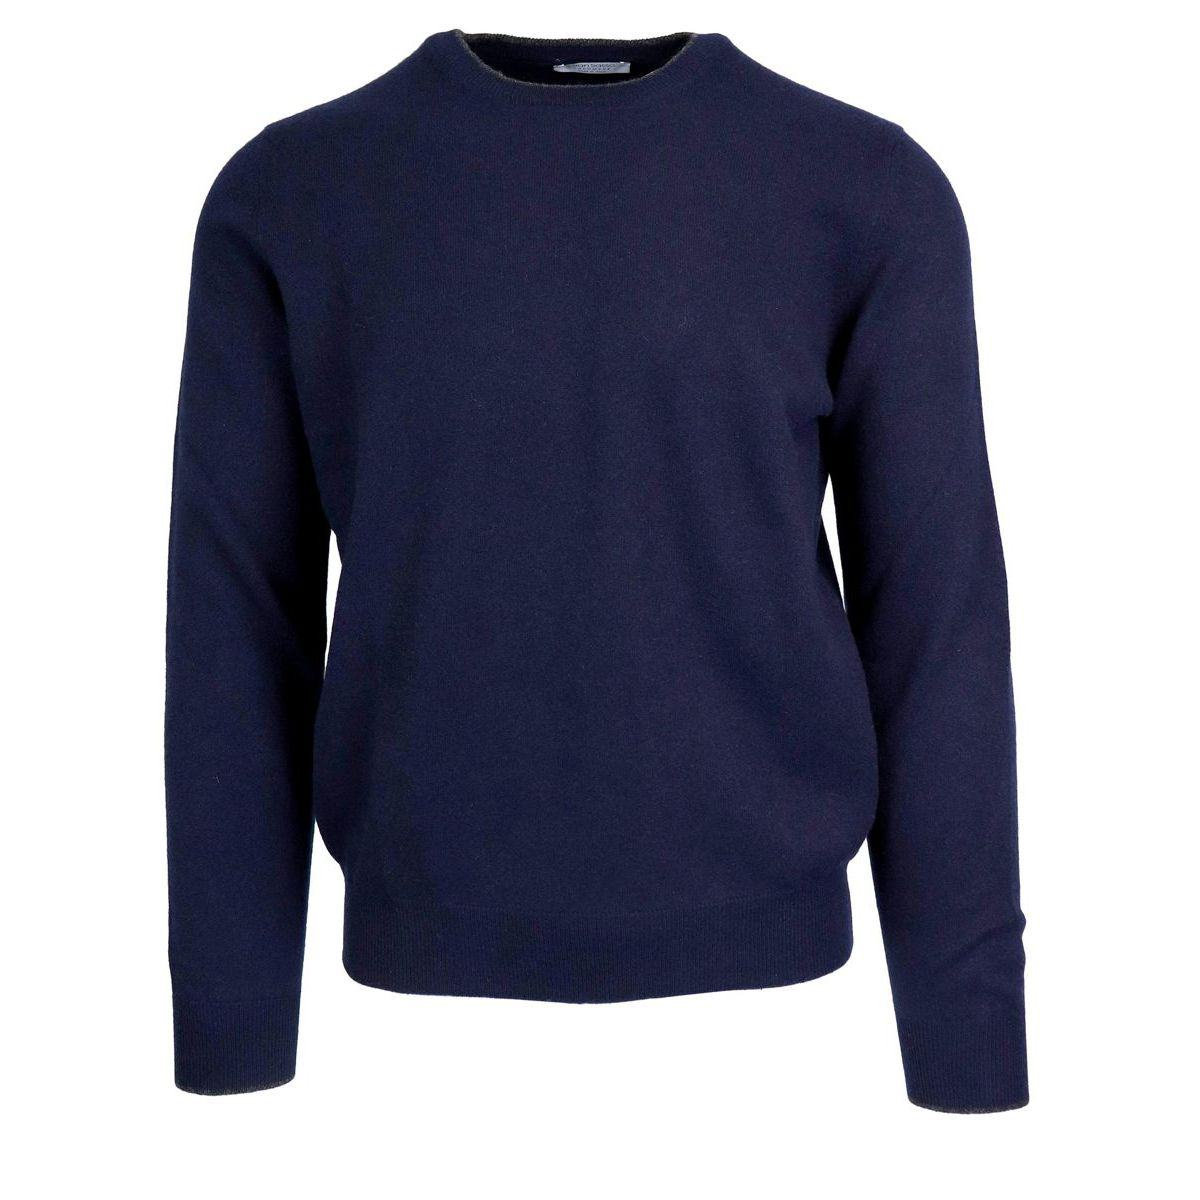 Cashmere crewneck pullover with patches Navy Gran Sasso